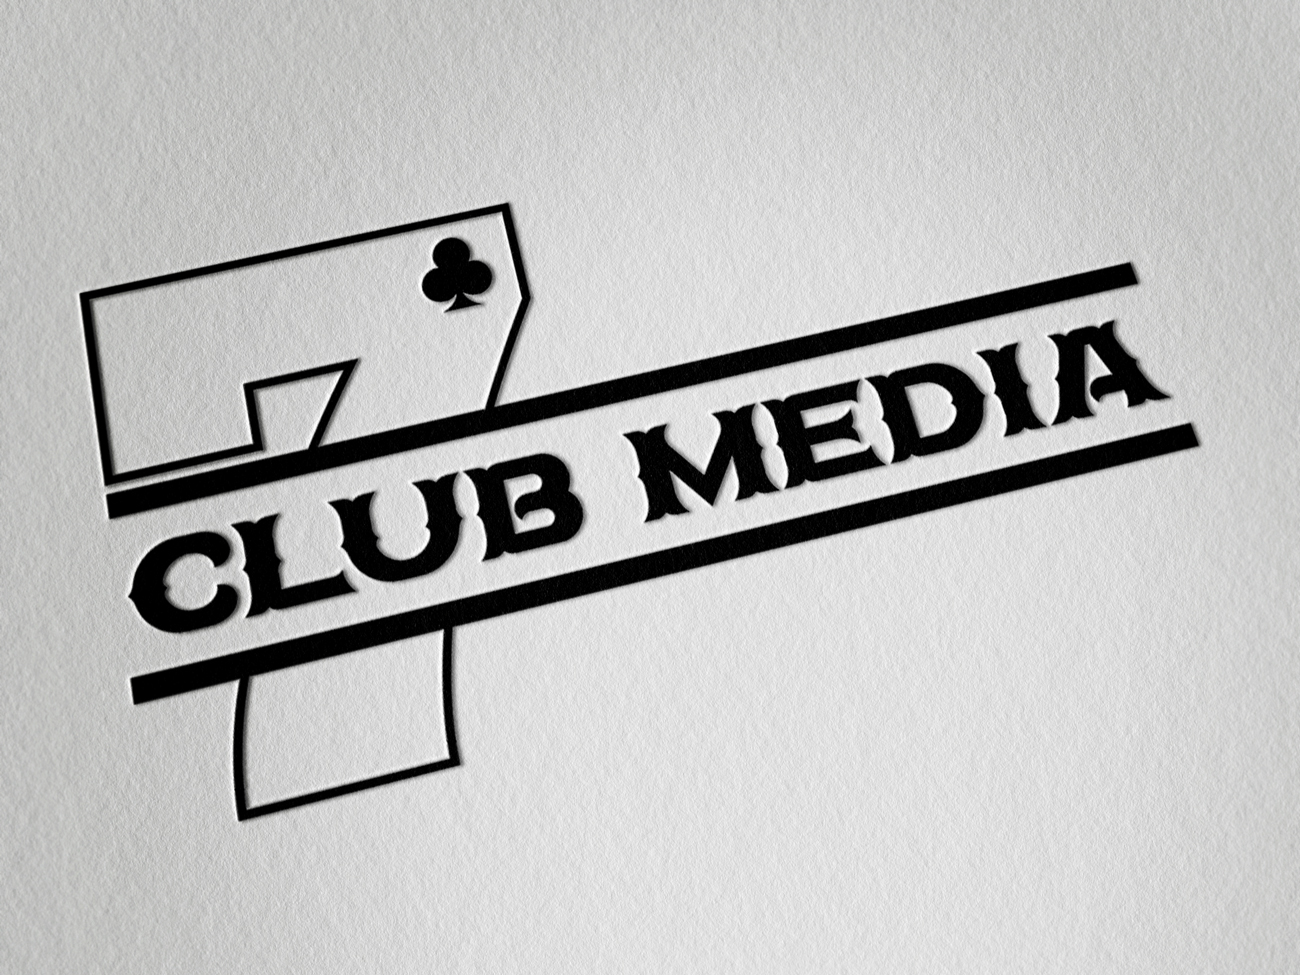 7clubmedia logo on white